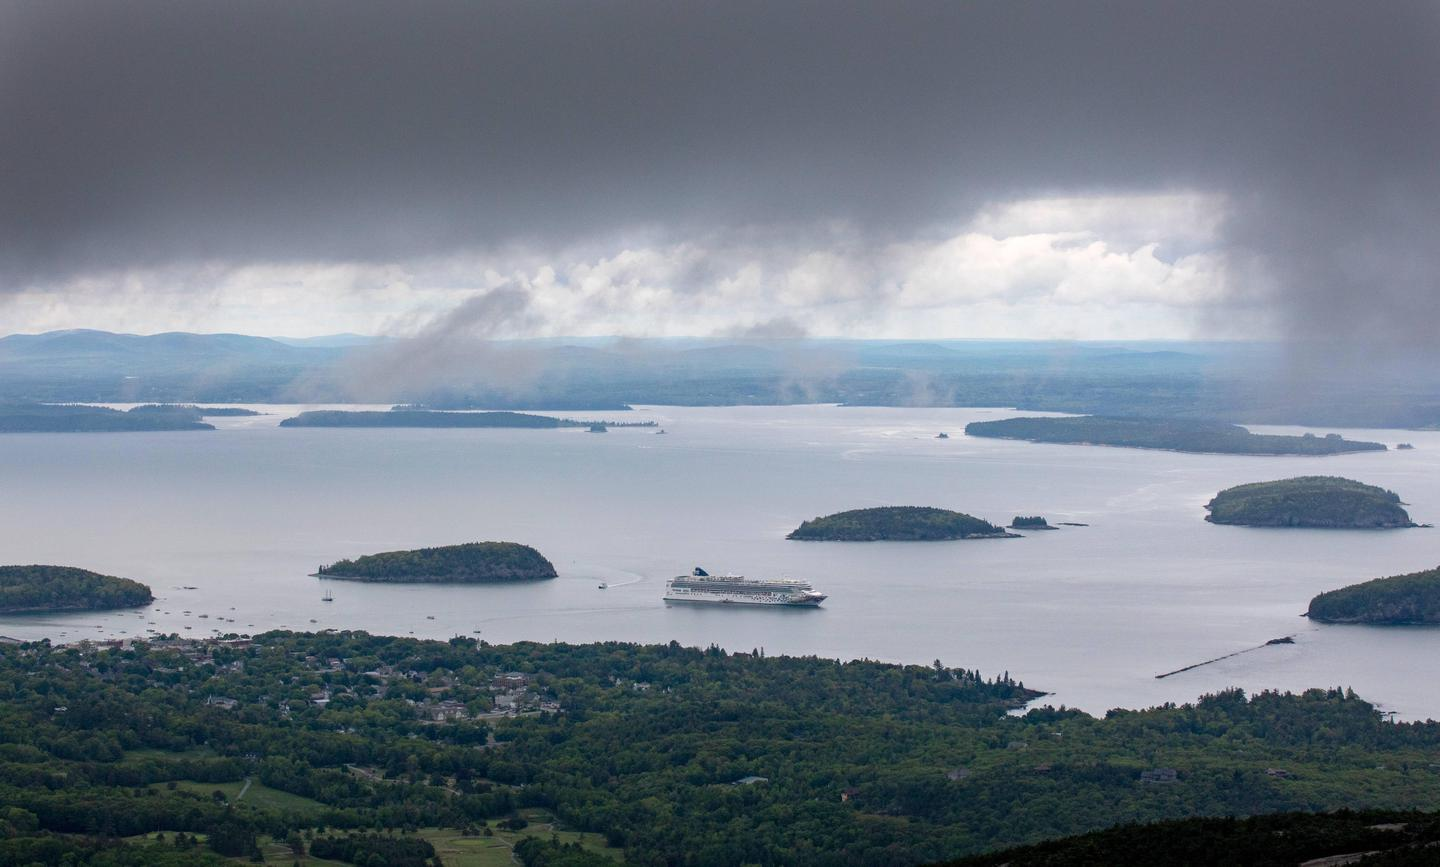 Expansive view of a harbor with a cruise ship surrounded by small islands with dark clouds across the topView of Bar Harbor from Cadillac Mountain with dark clouds quickly descending